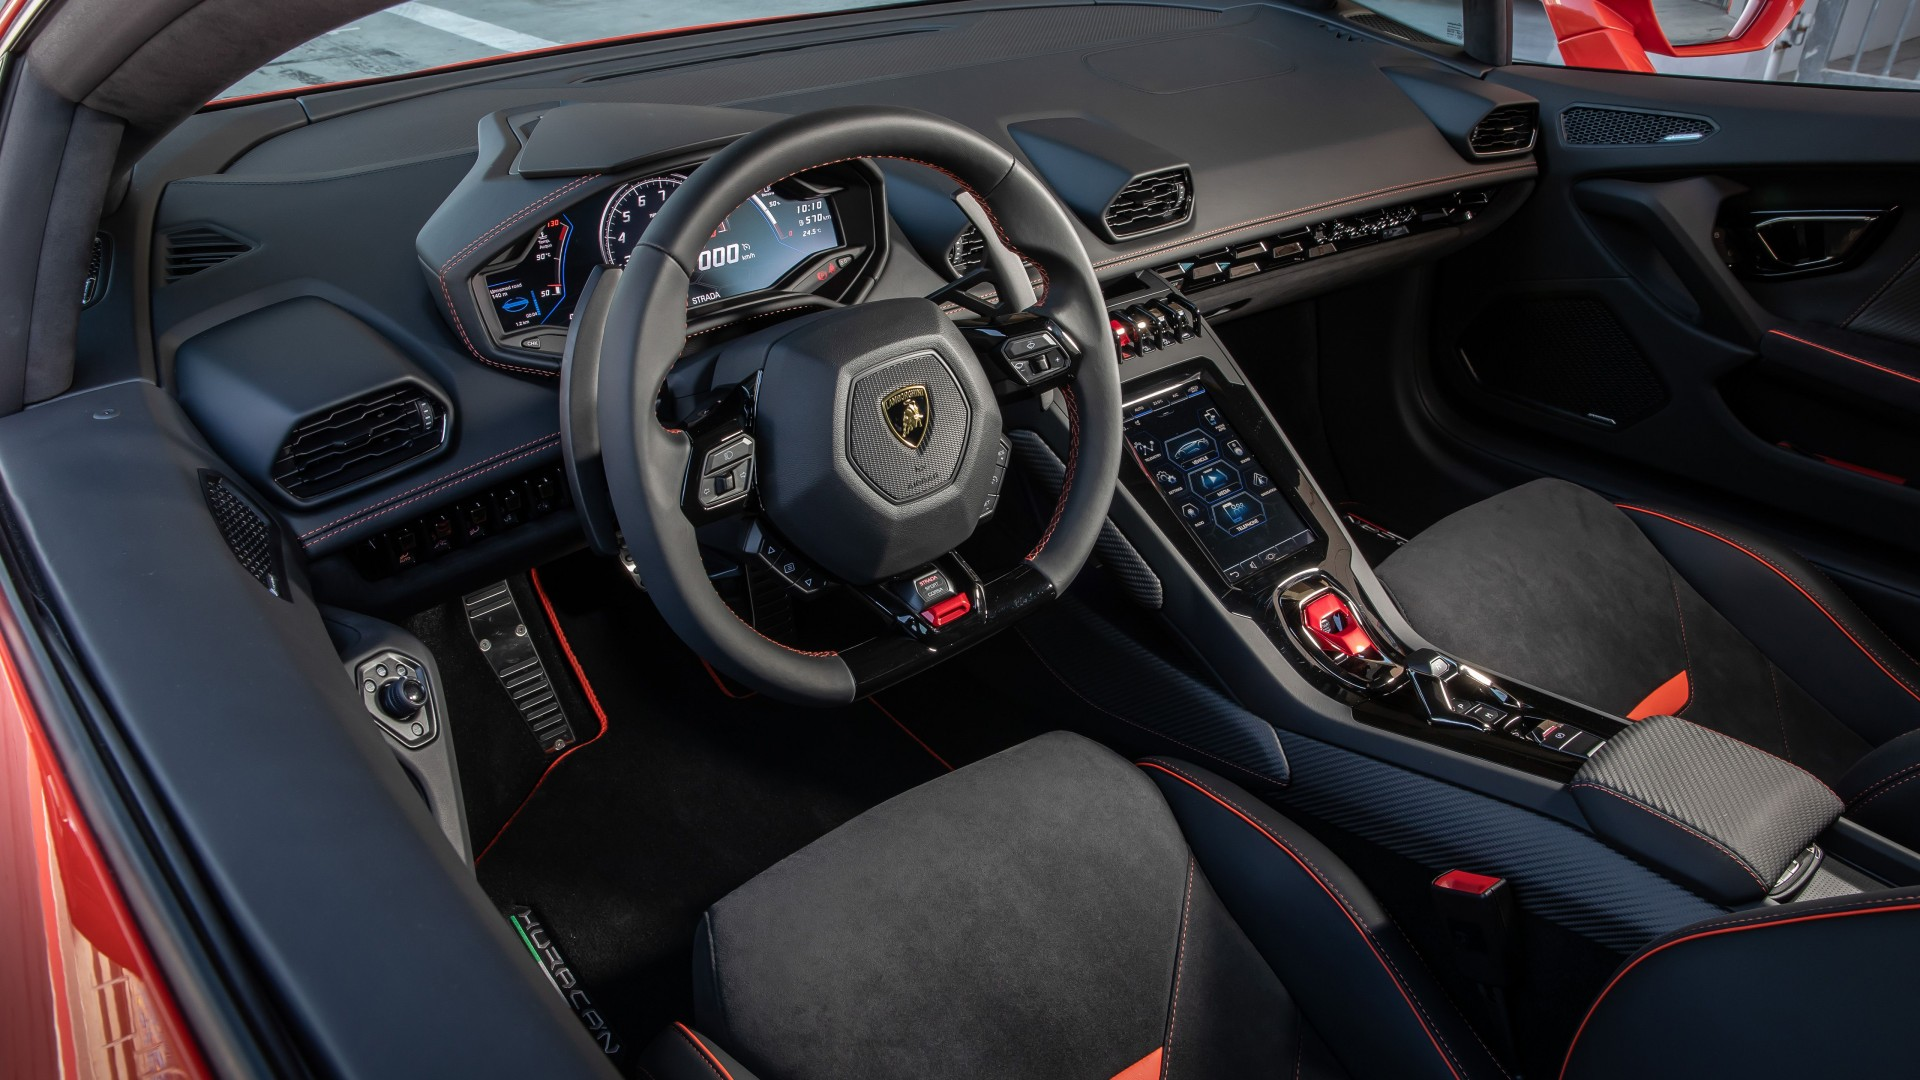 Lamborghini Huracan EVO Interior 5K 2019 Wallpaper | HD Car Wallpapers | ID #11954